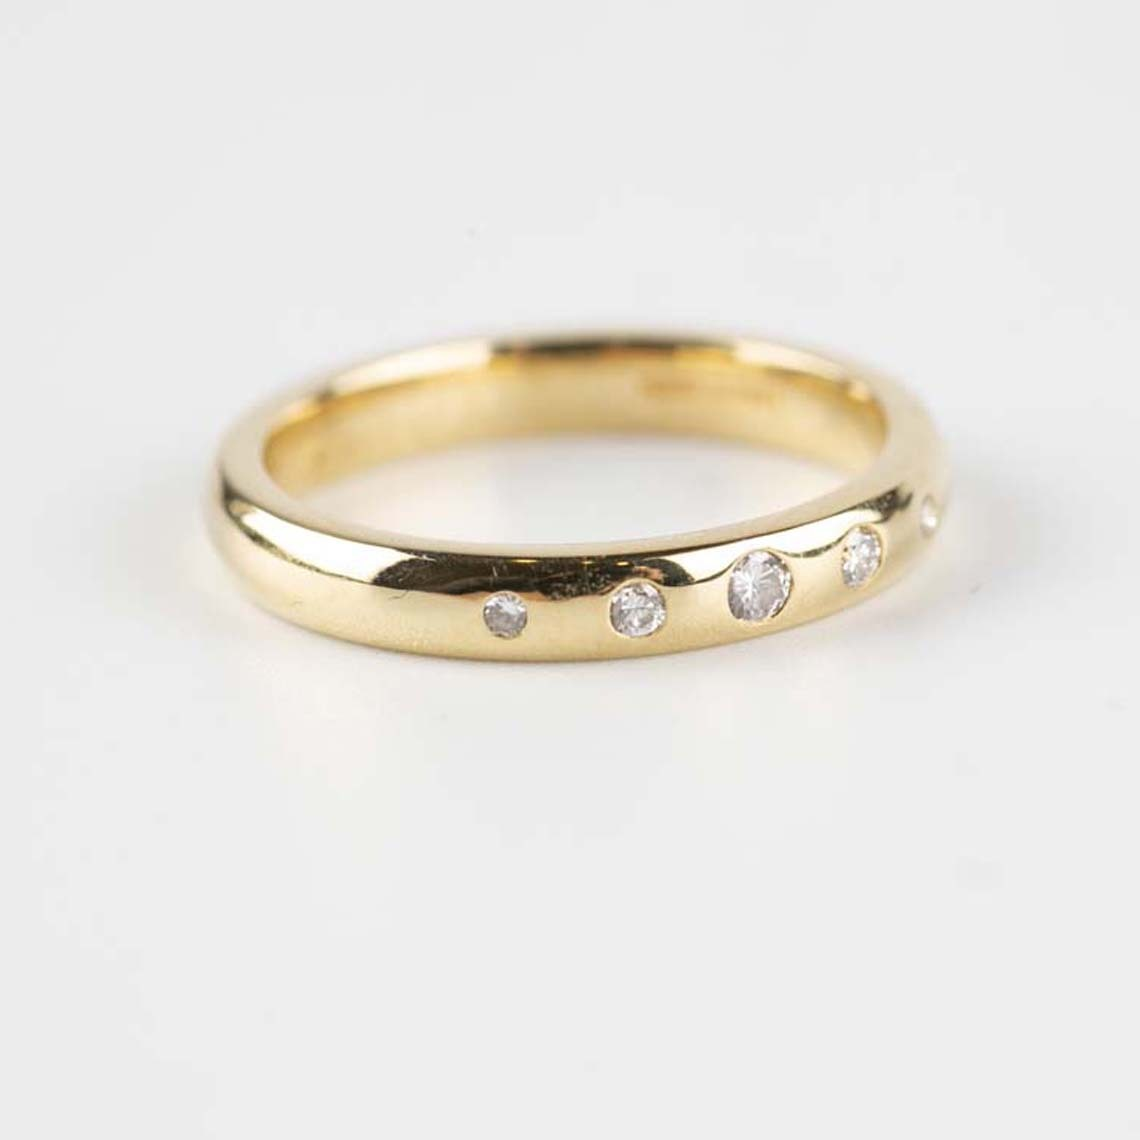 Wedding/eternity band